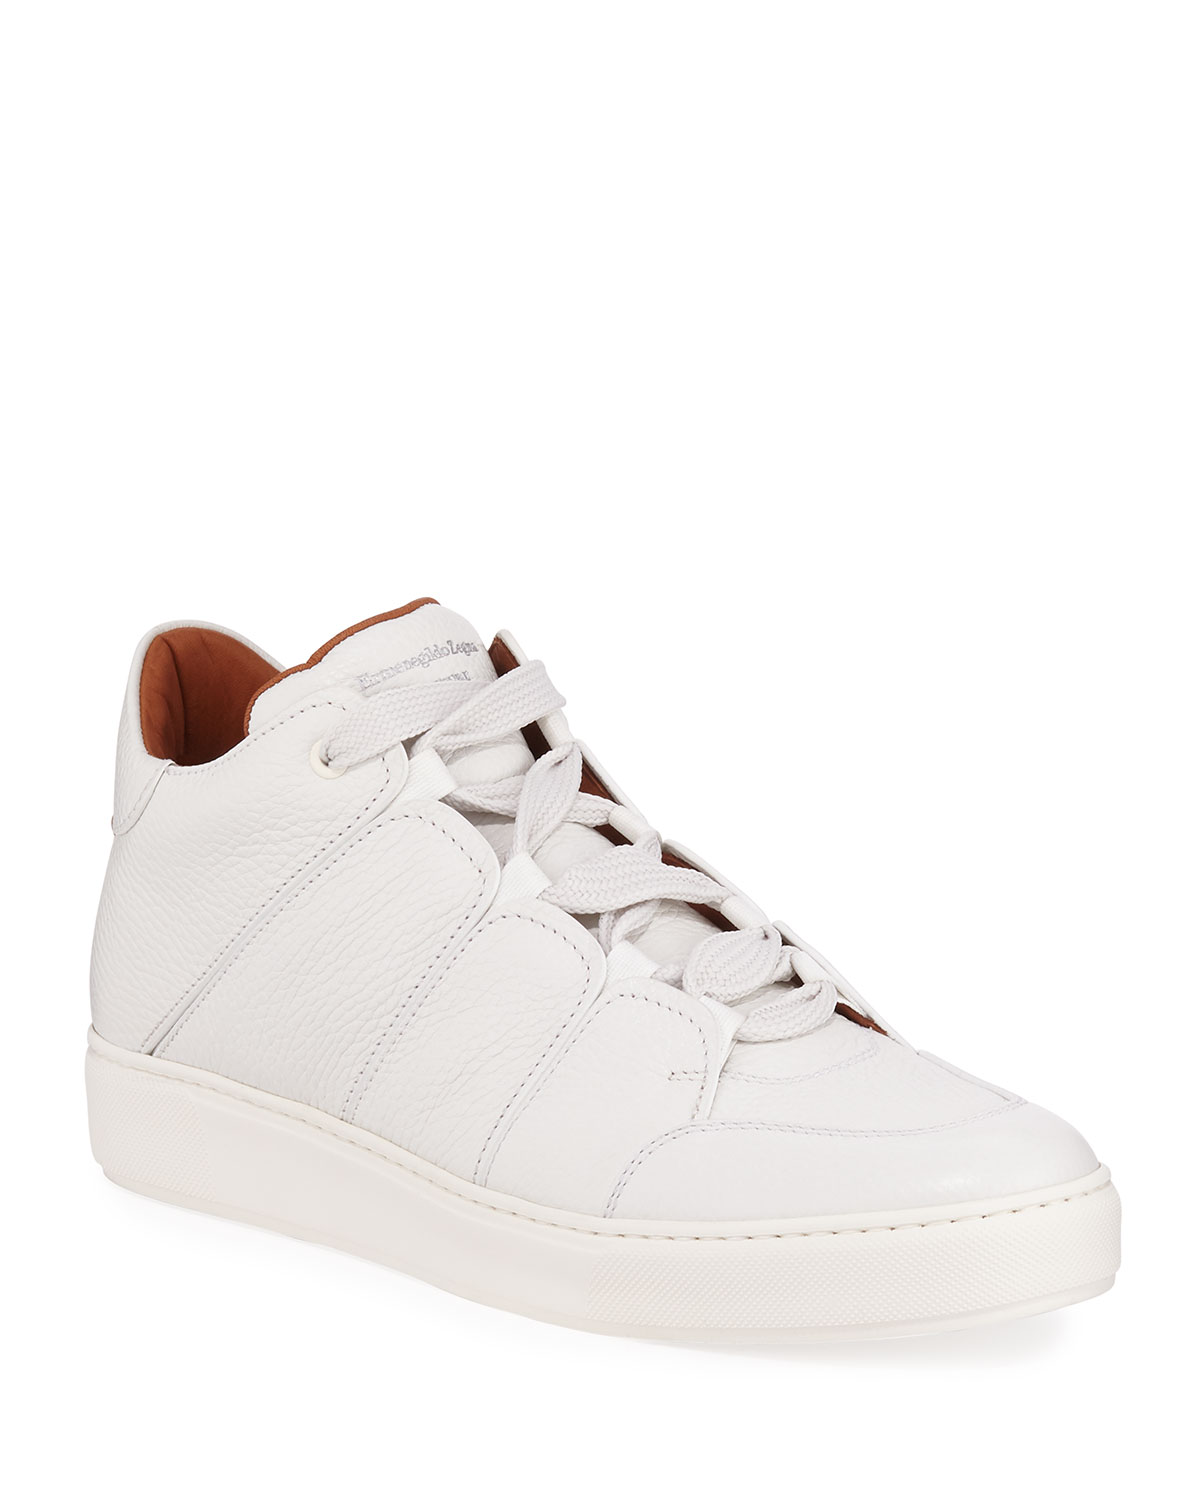 Ermenegildo Zegna Sneakers MEN'S TIZIANO GRAINED LEATHER HIGH-TOP SNEAKERS